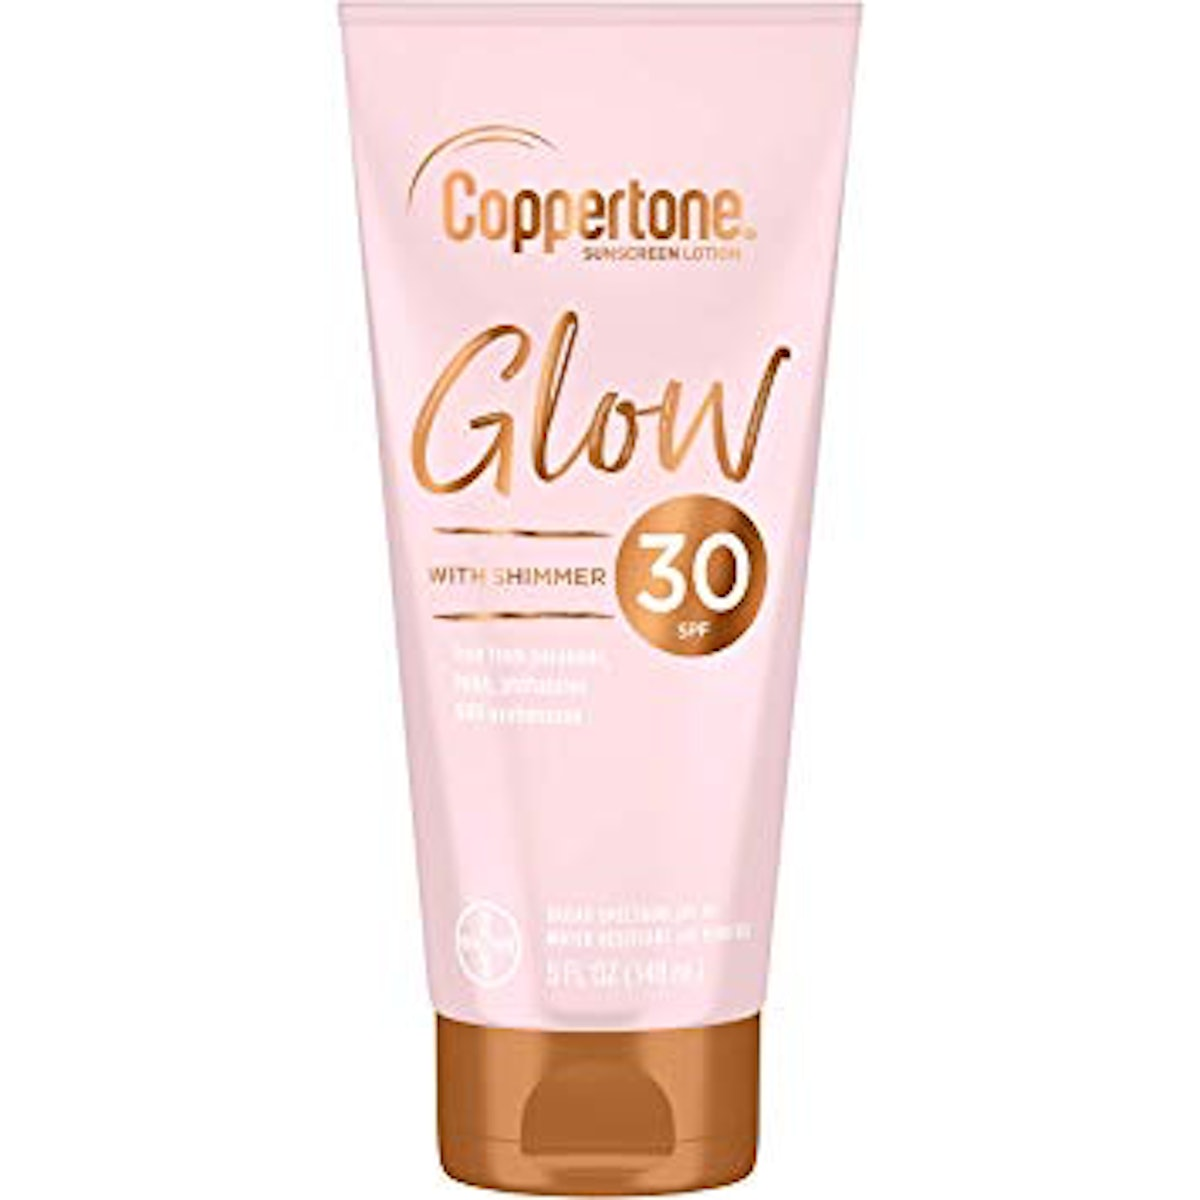 Coppertone Glow Sunscreen Lotion With Illuminating Shimmer Minerals